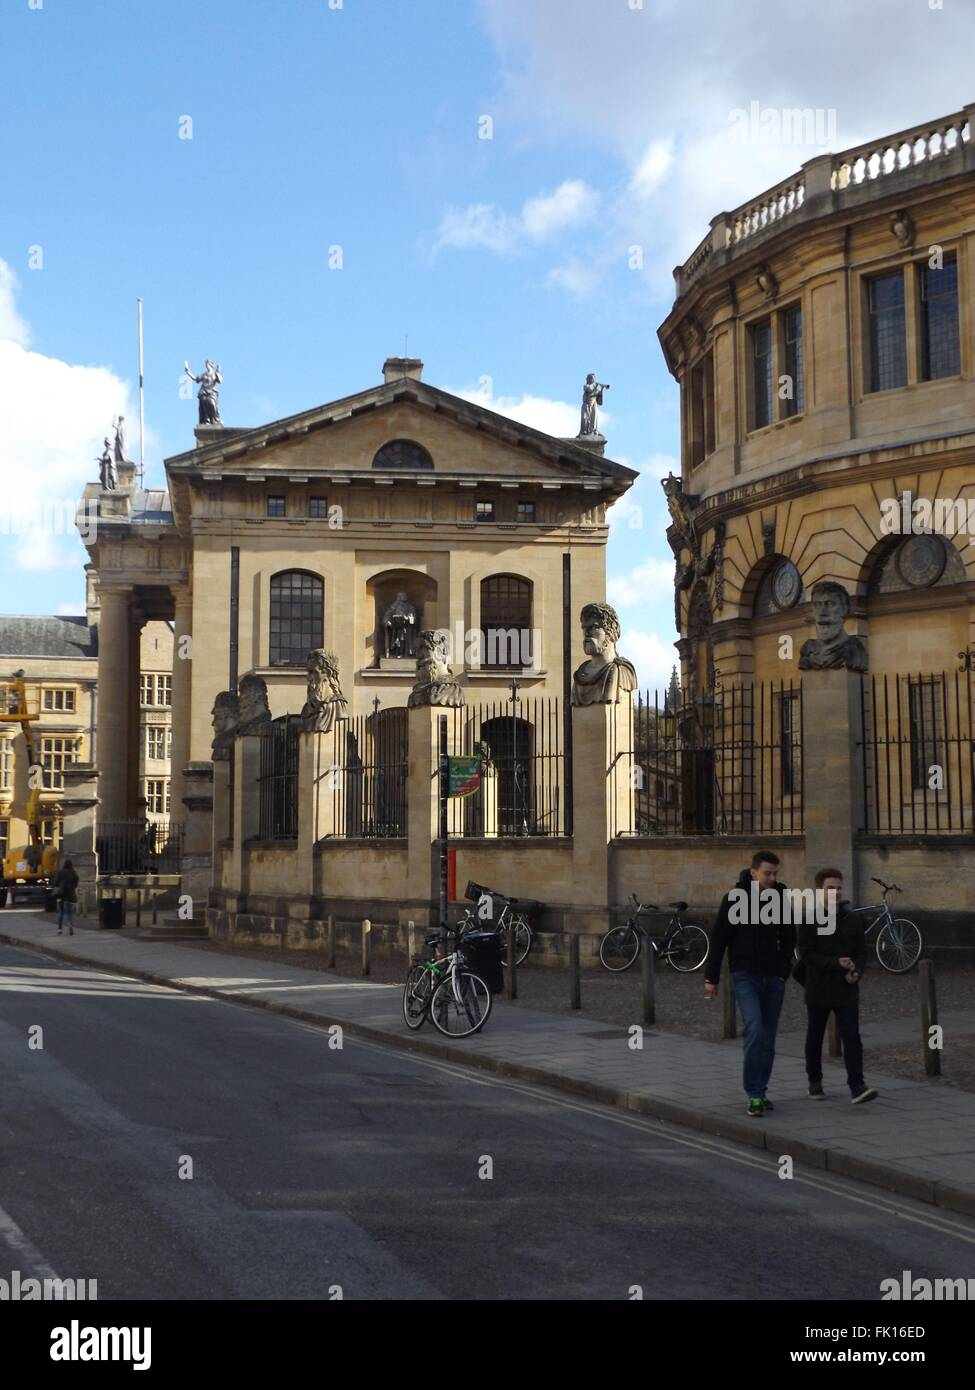 Clarendon Building, next to the Sheldonian theatre in Oxford - Stock Image